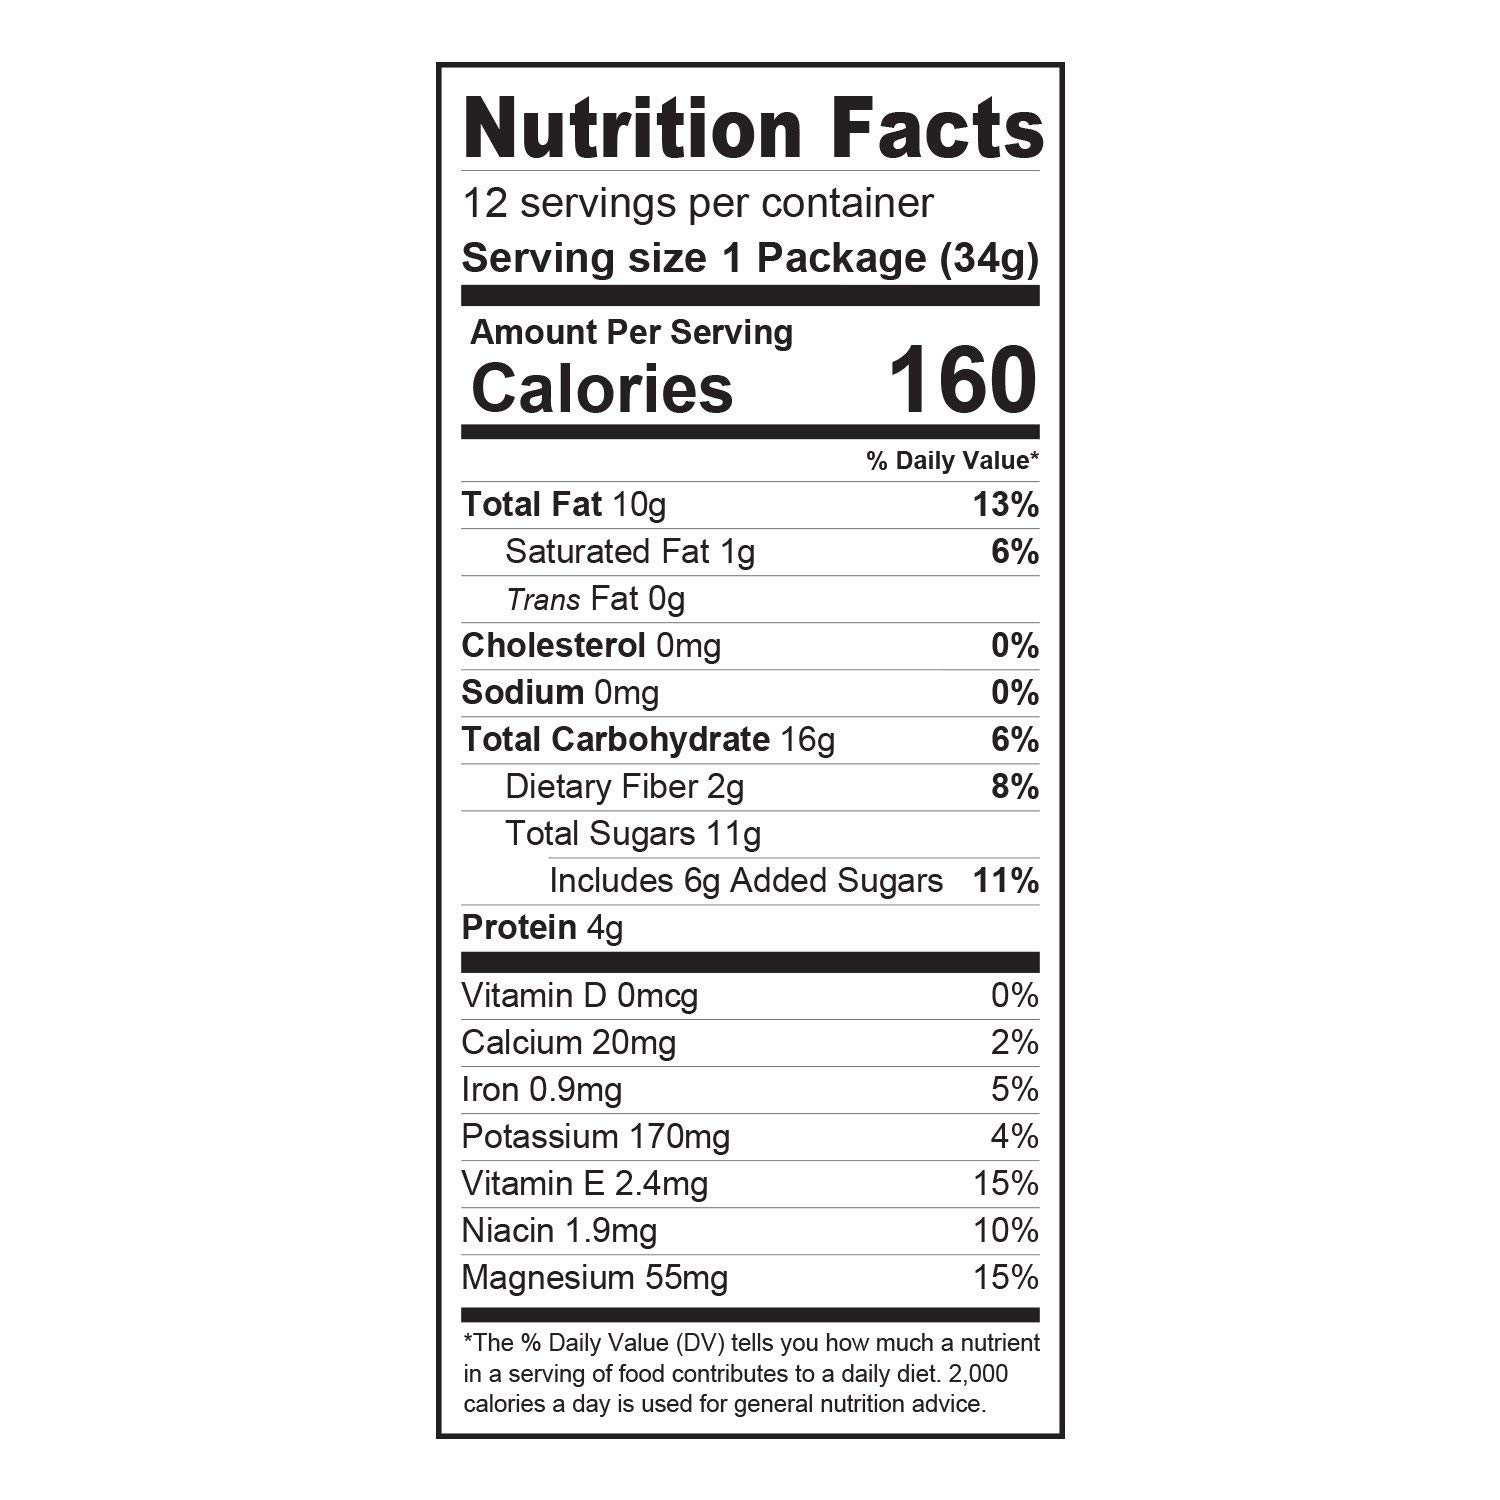 Nature's Garden Trail Mix Snack Packs, Multi Pack 1.2 oz bags, Pack of 24, Omega-3 Deluxe Mix, Cranberry Health Mix (Pack of 2) by Nature's Garden (Image #3)